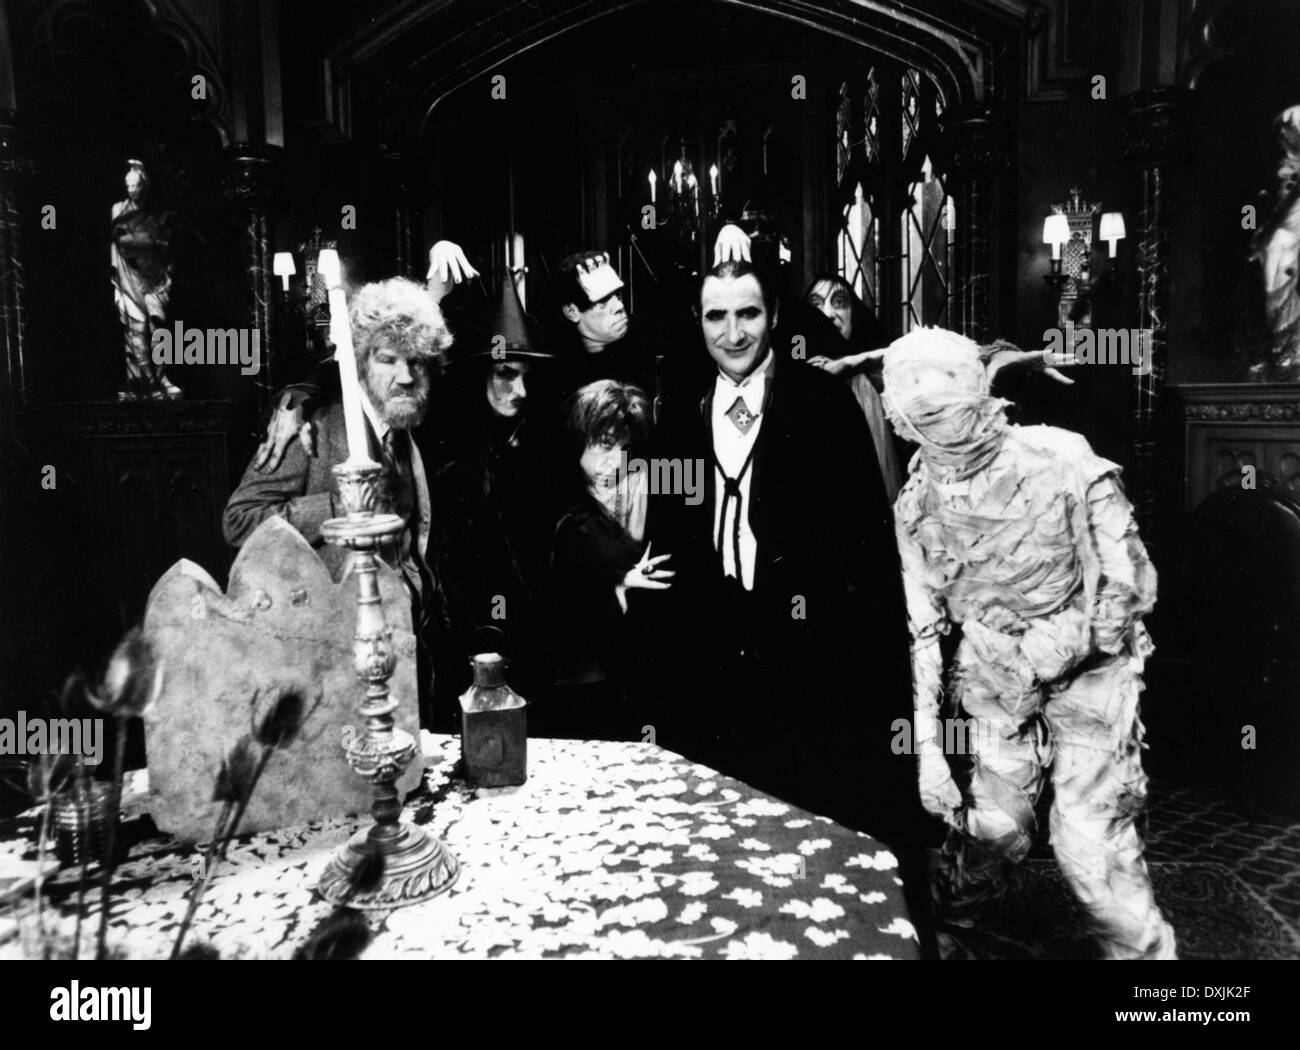 THE HALLOWEEN THAT ALMOST WASN'T Stock Photo, Royalty Free Image ...